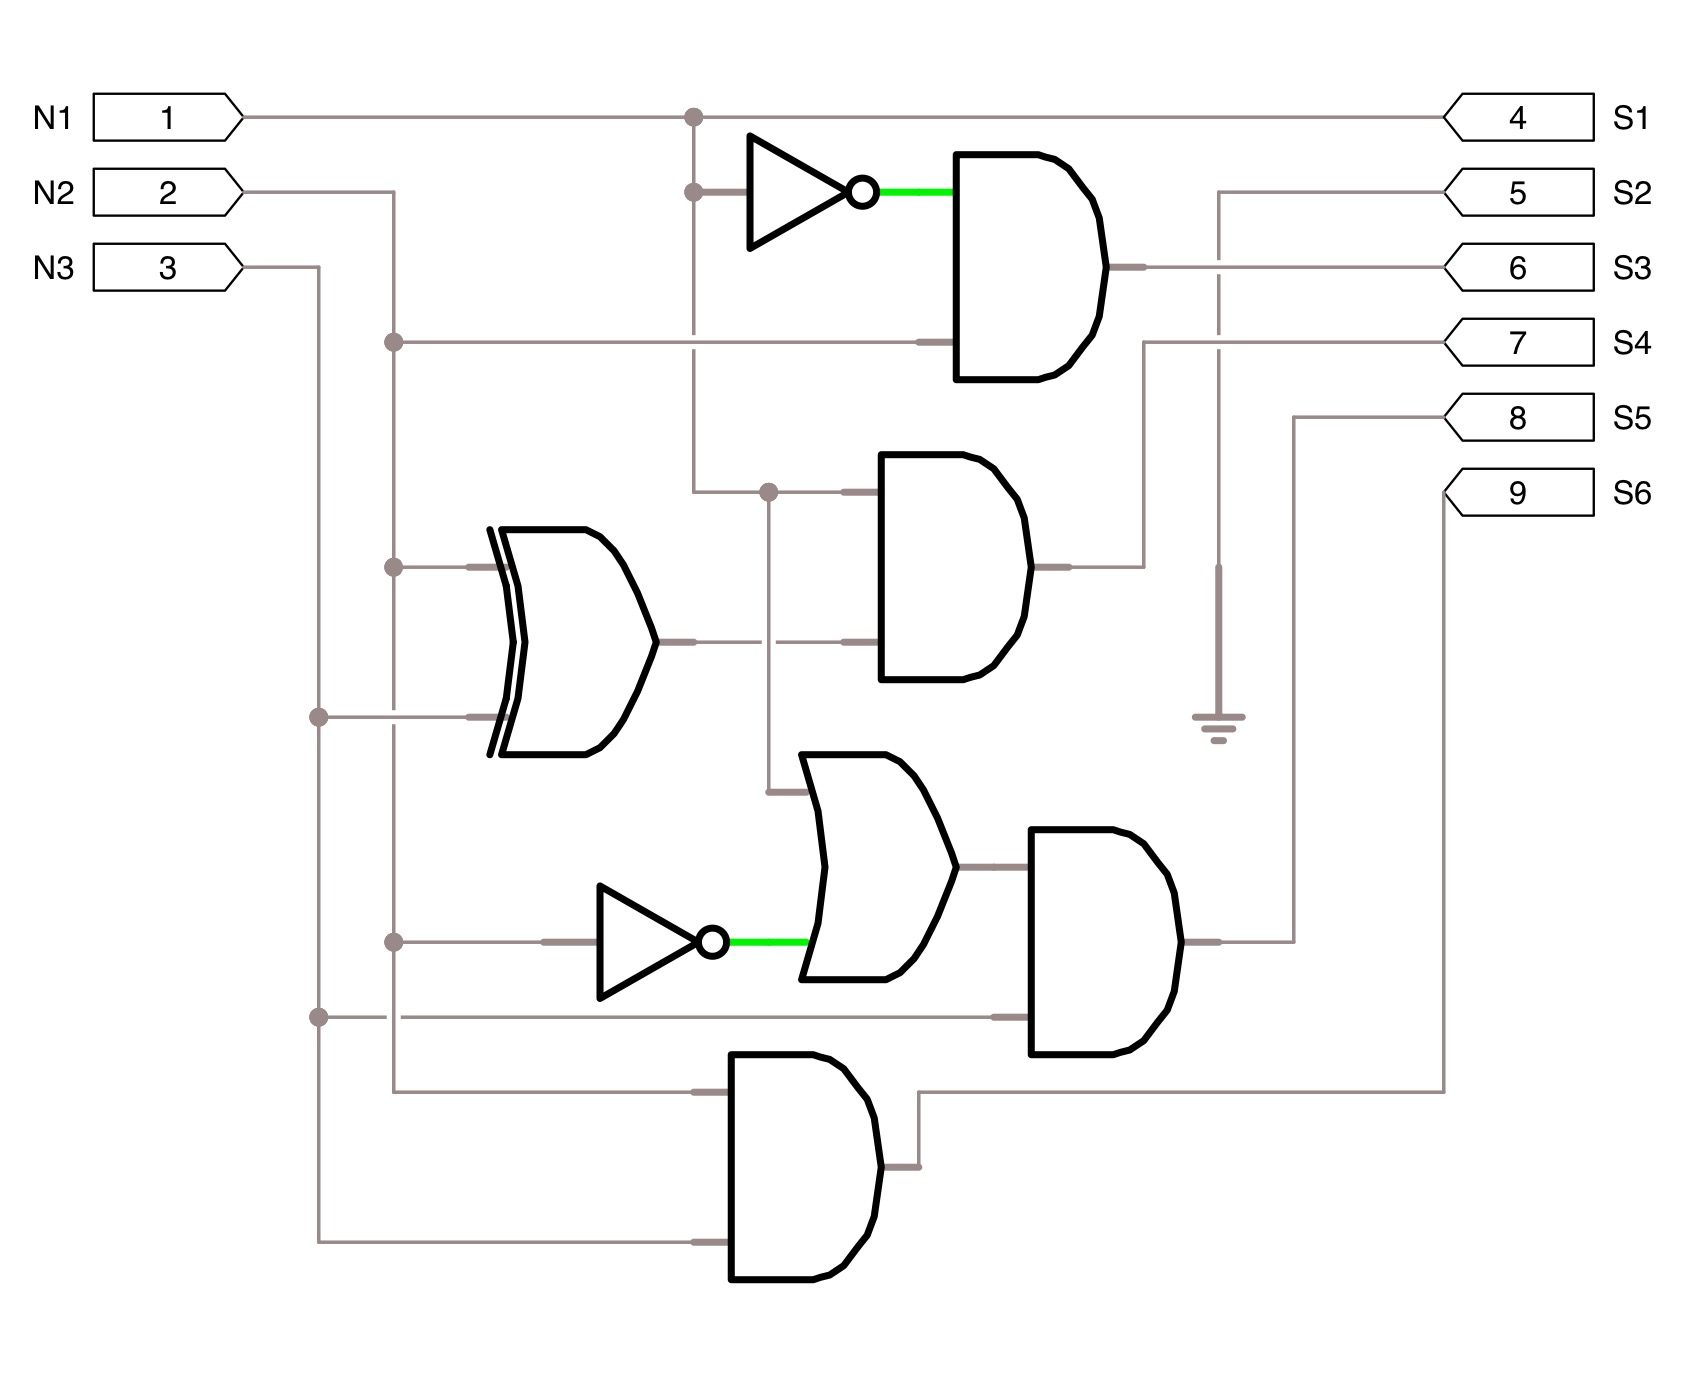 Basic Logic Gates And Truth Tables